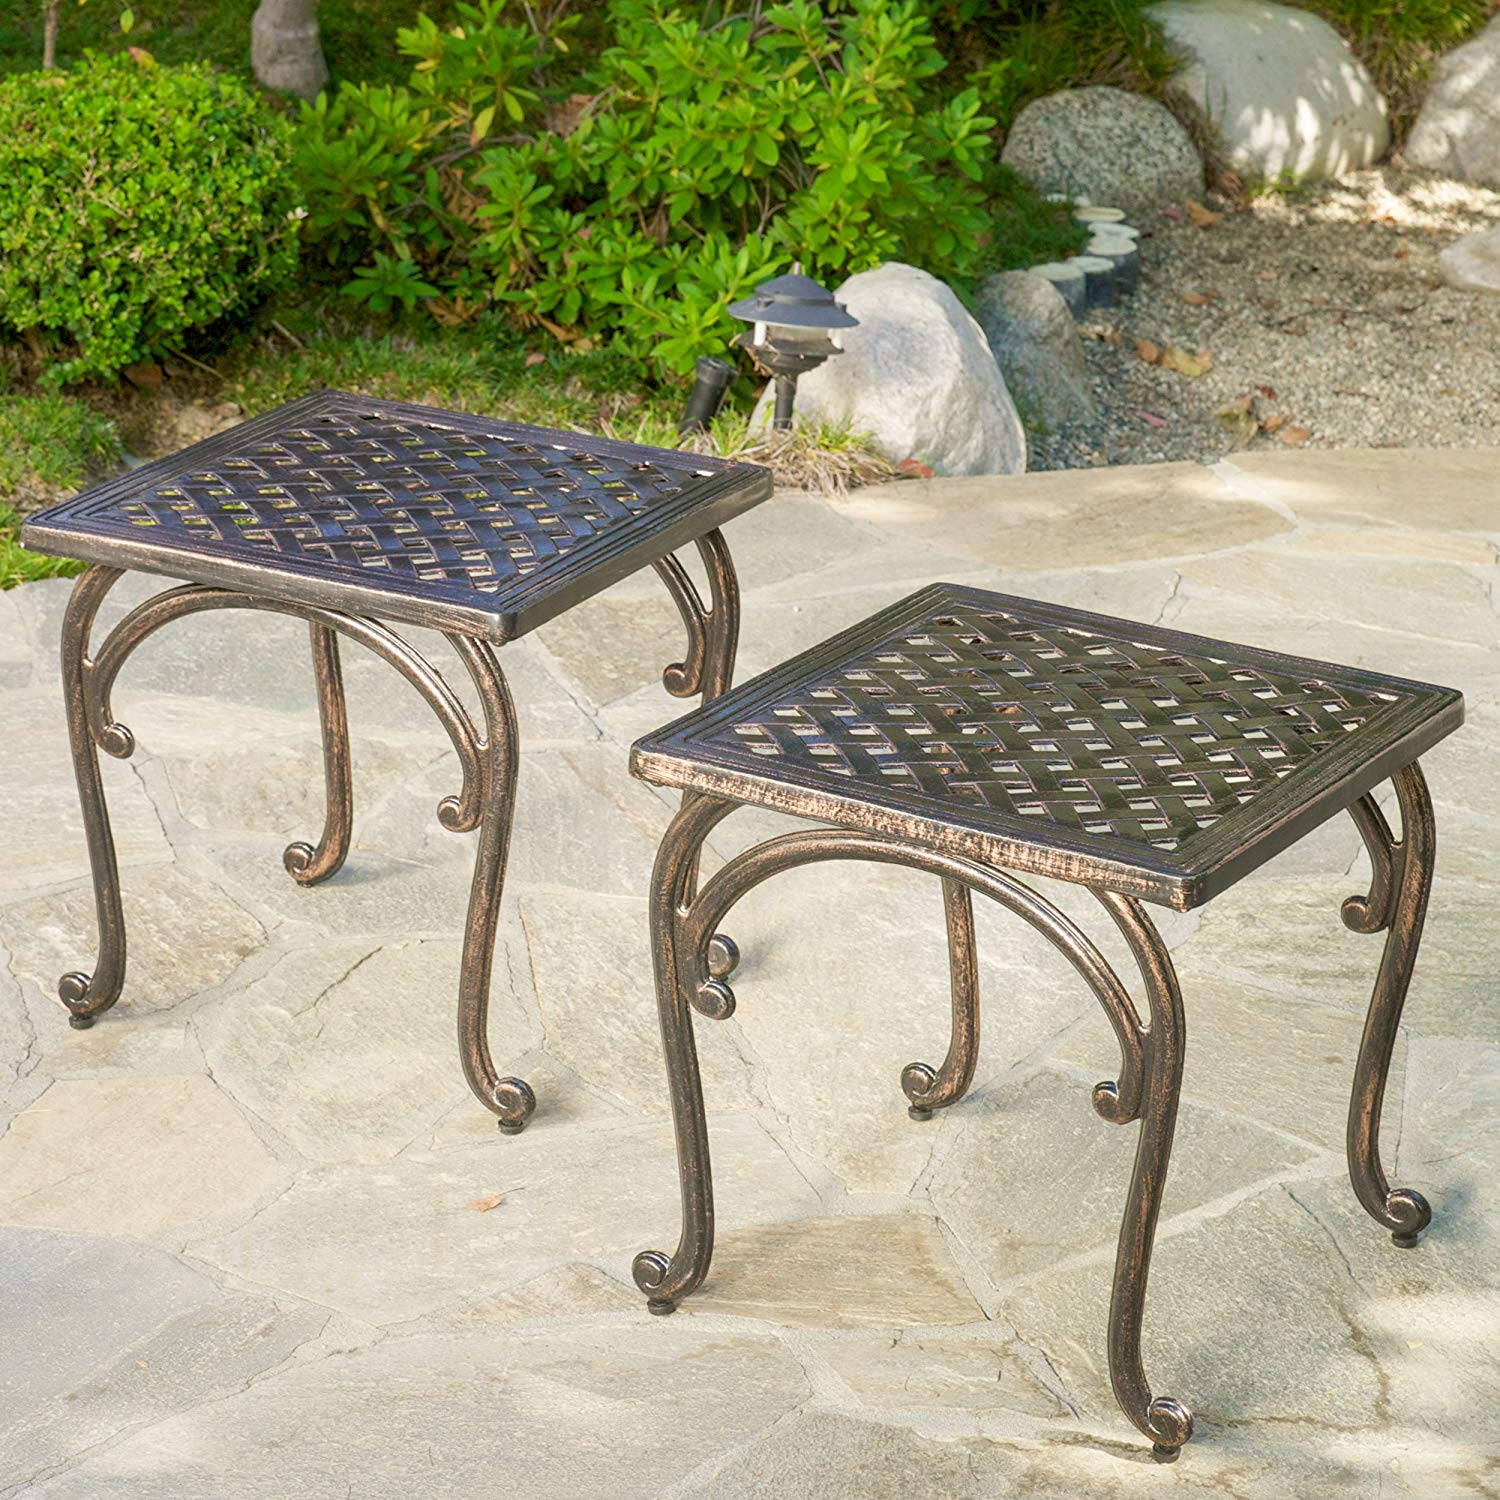 mosaic table cloth round elastic edge fitted vinyl img php zaltana outdoor accent hyde cast aluminium set rattan side glass top small iron large umbrellas pier imports rugs teal